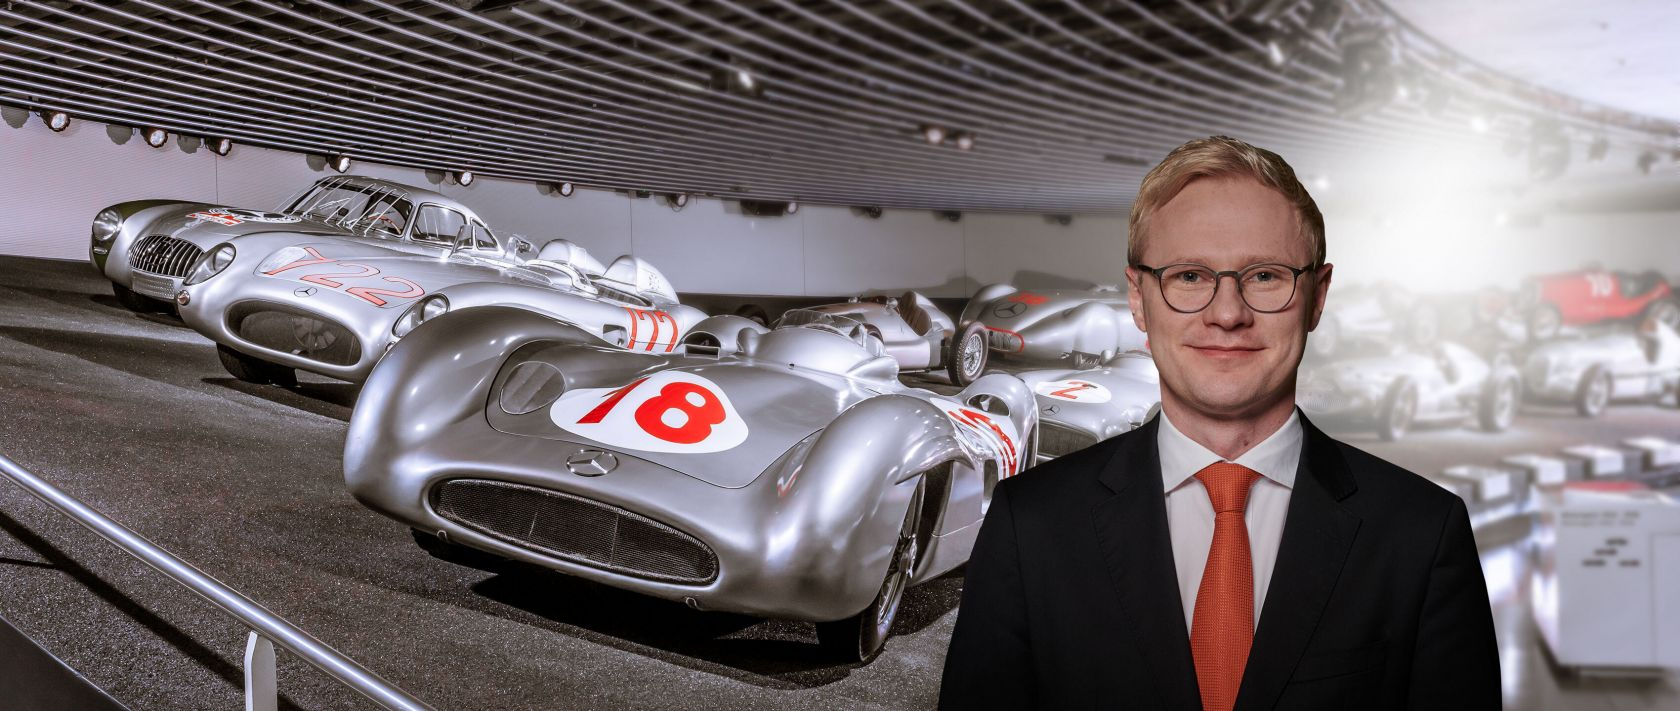 Guided tours at the Mercedes-Benz Museum: Special guided tour motorsports.